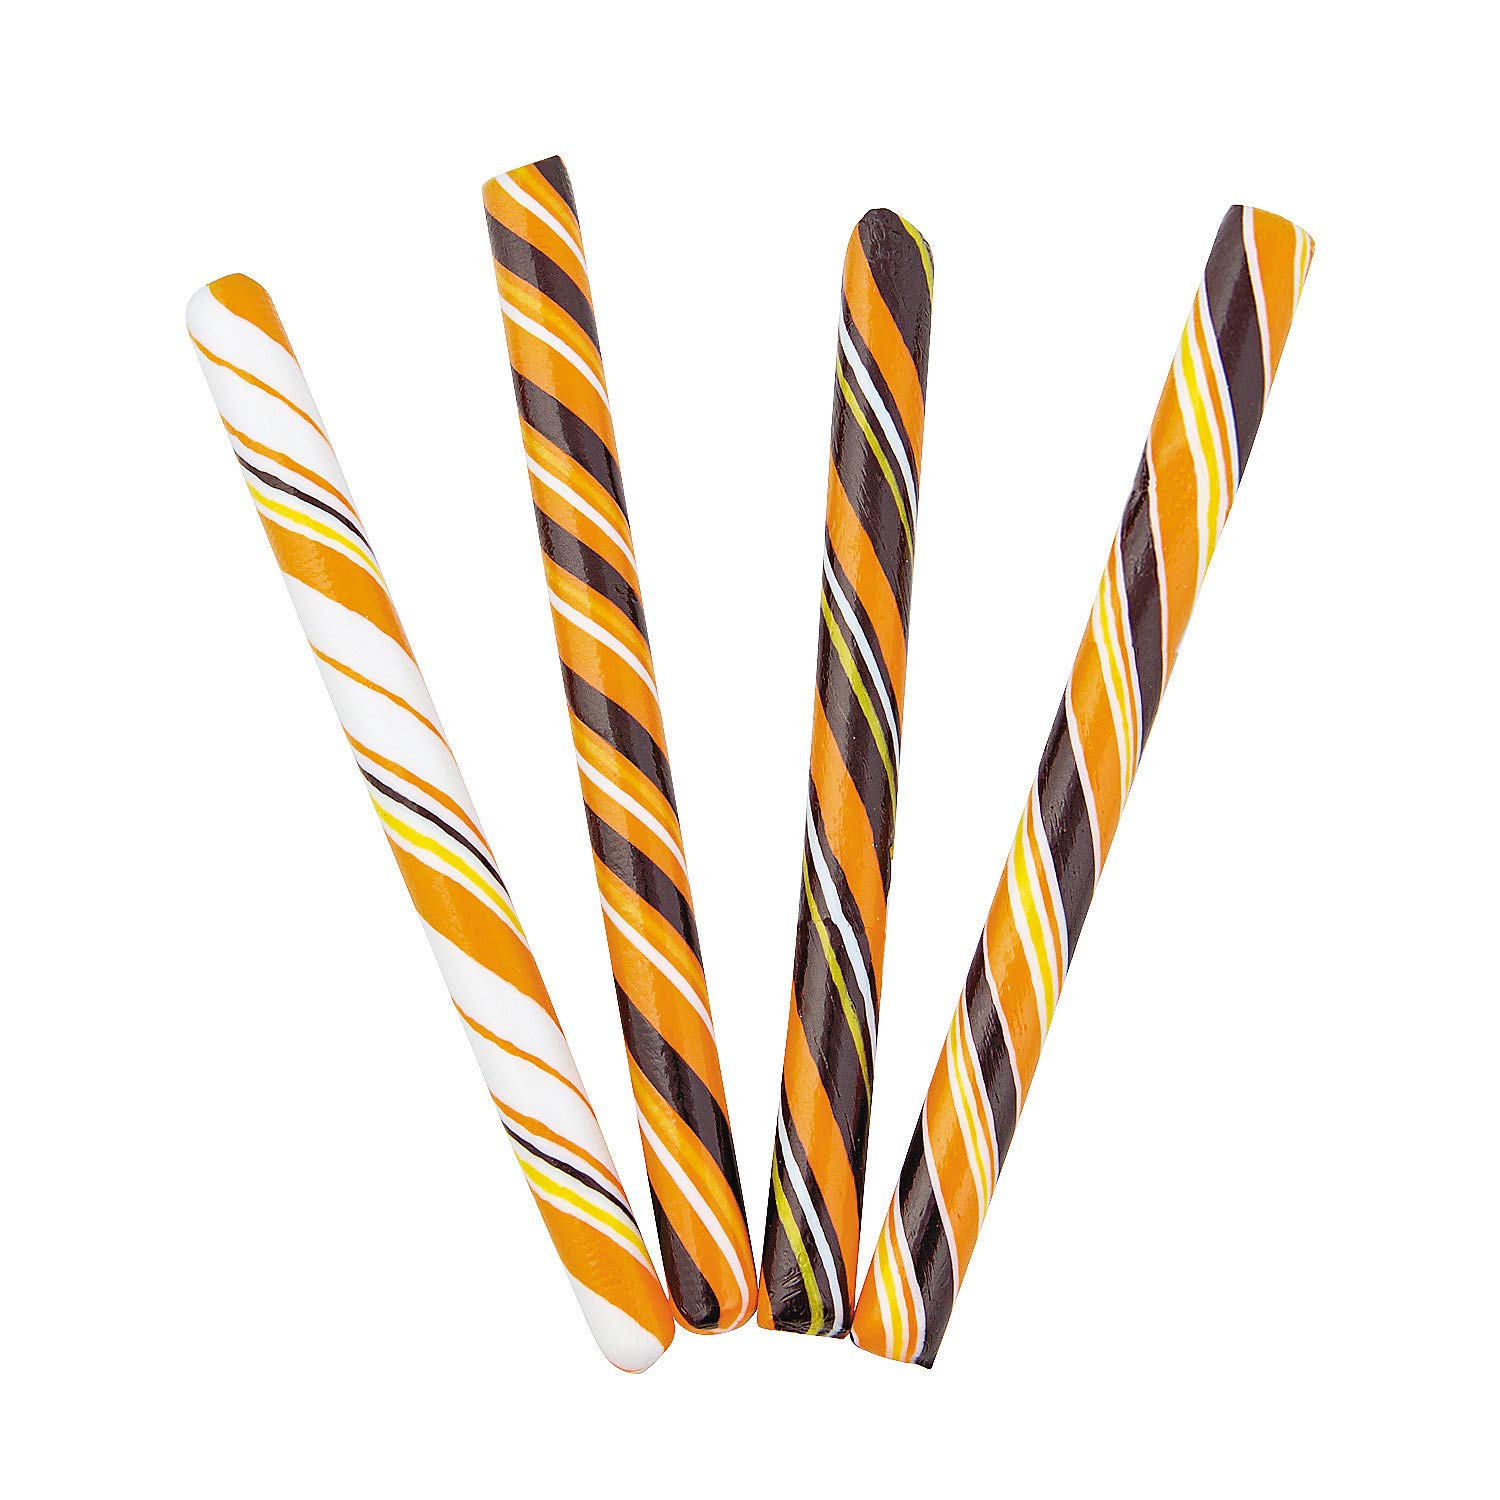 Max 64% OFF Halloween OFFicial site Candy Cane Sticks pieces 80